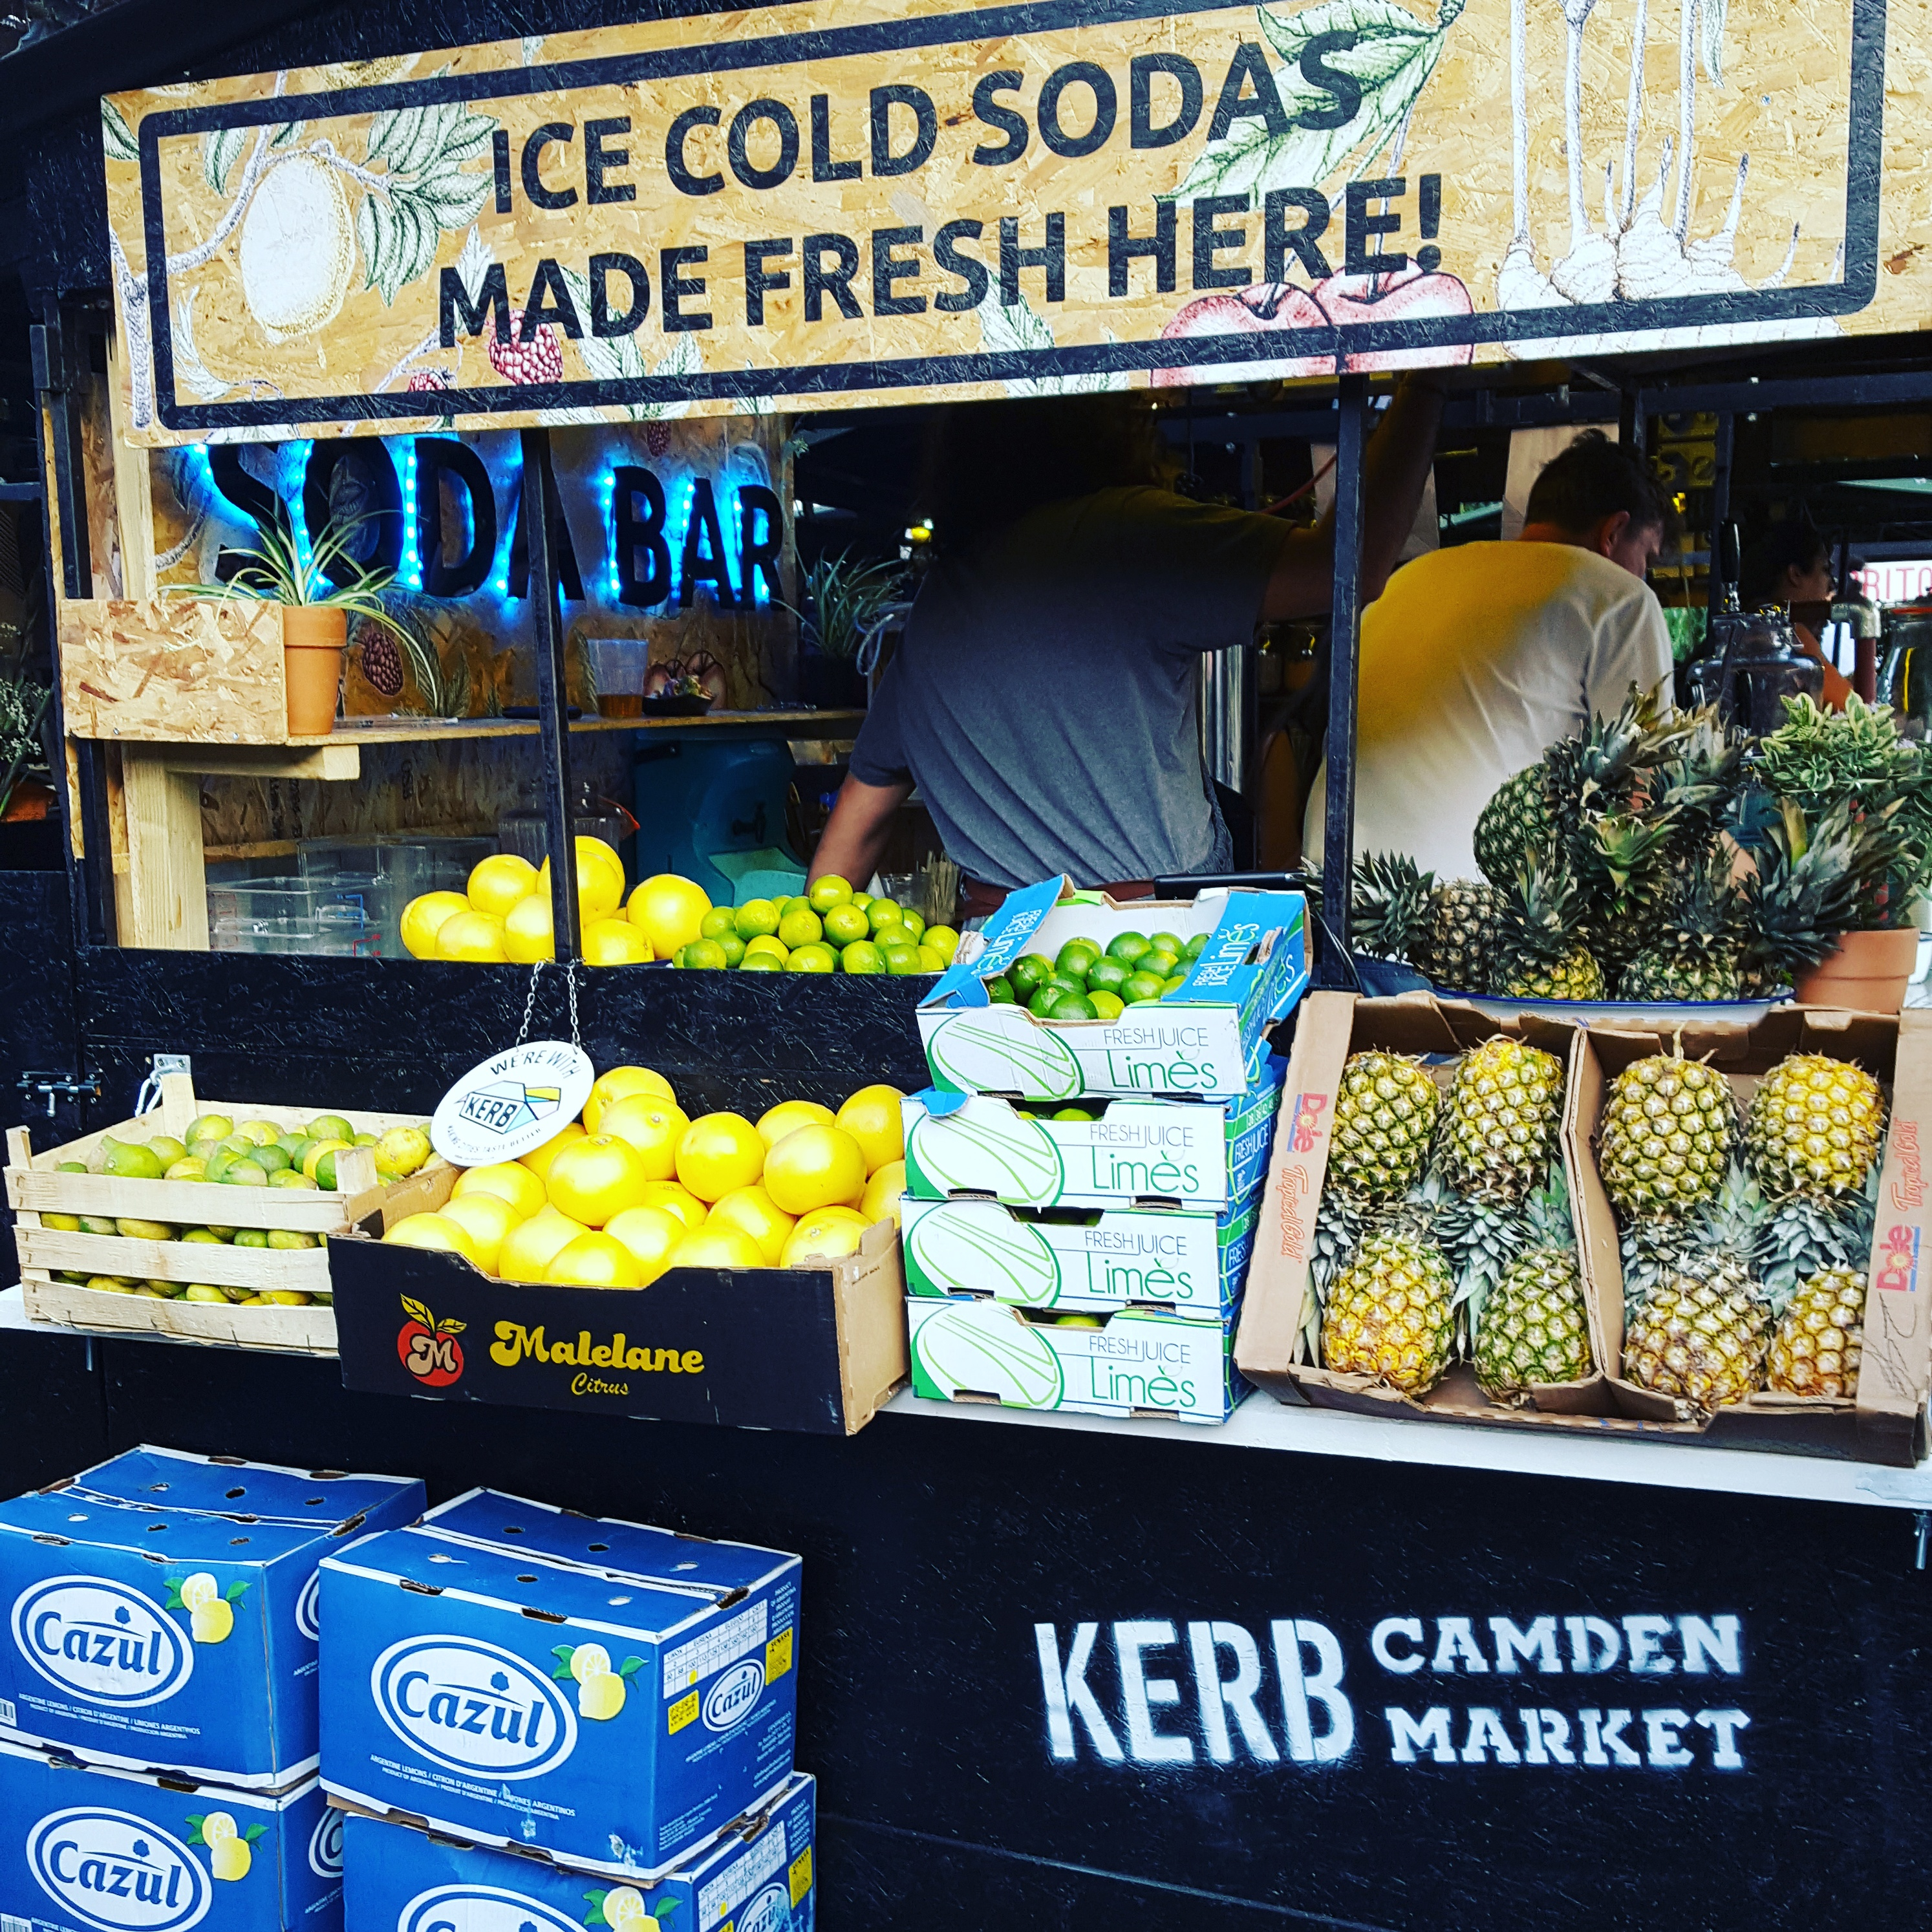 Kerb Camden market, Square Root